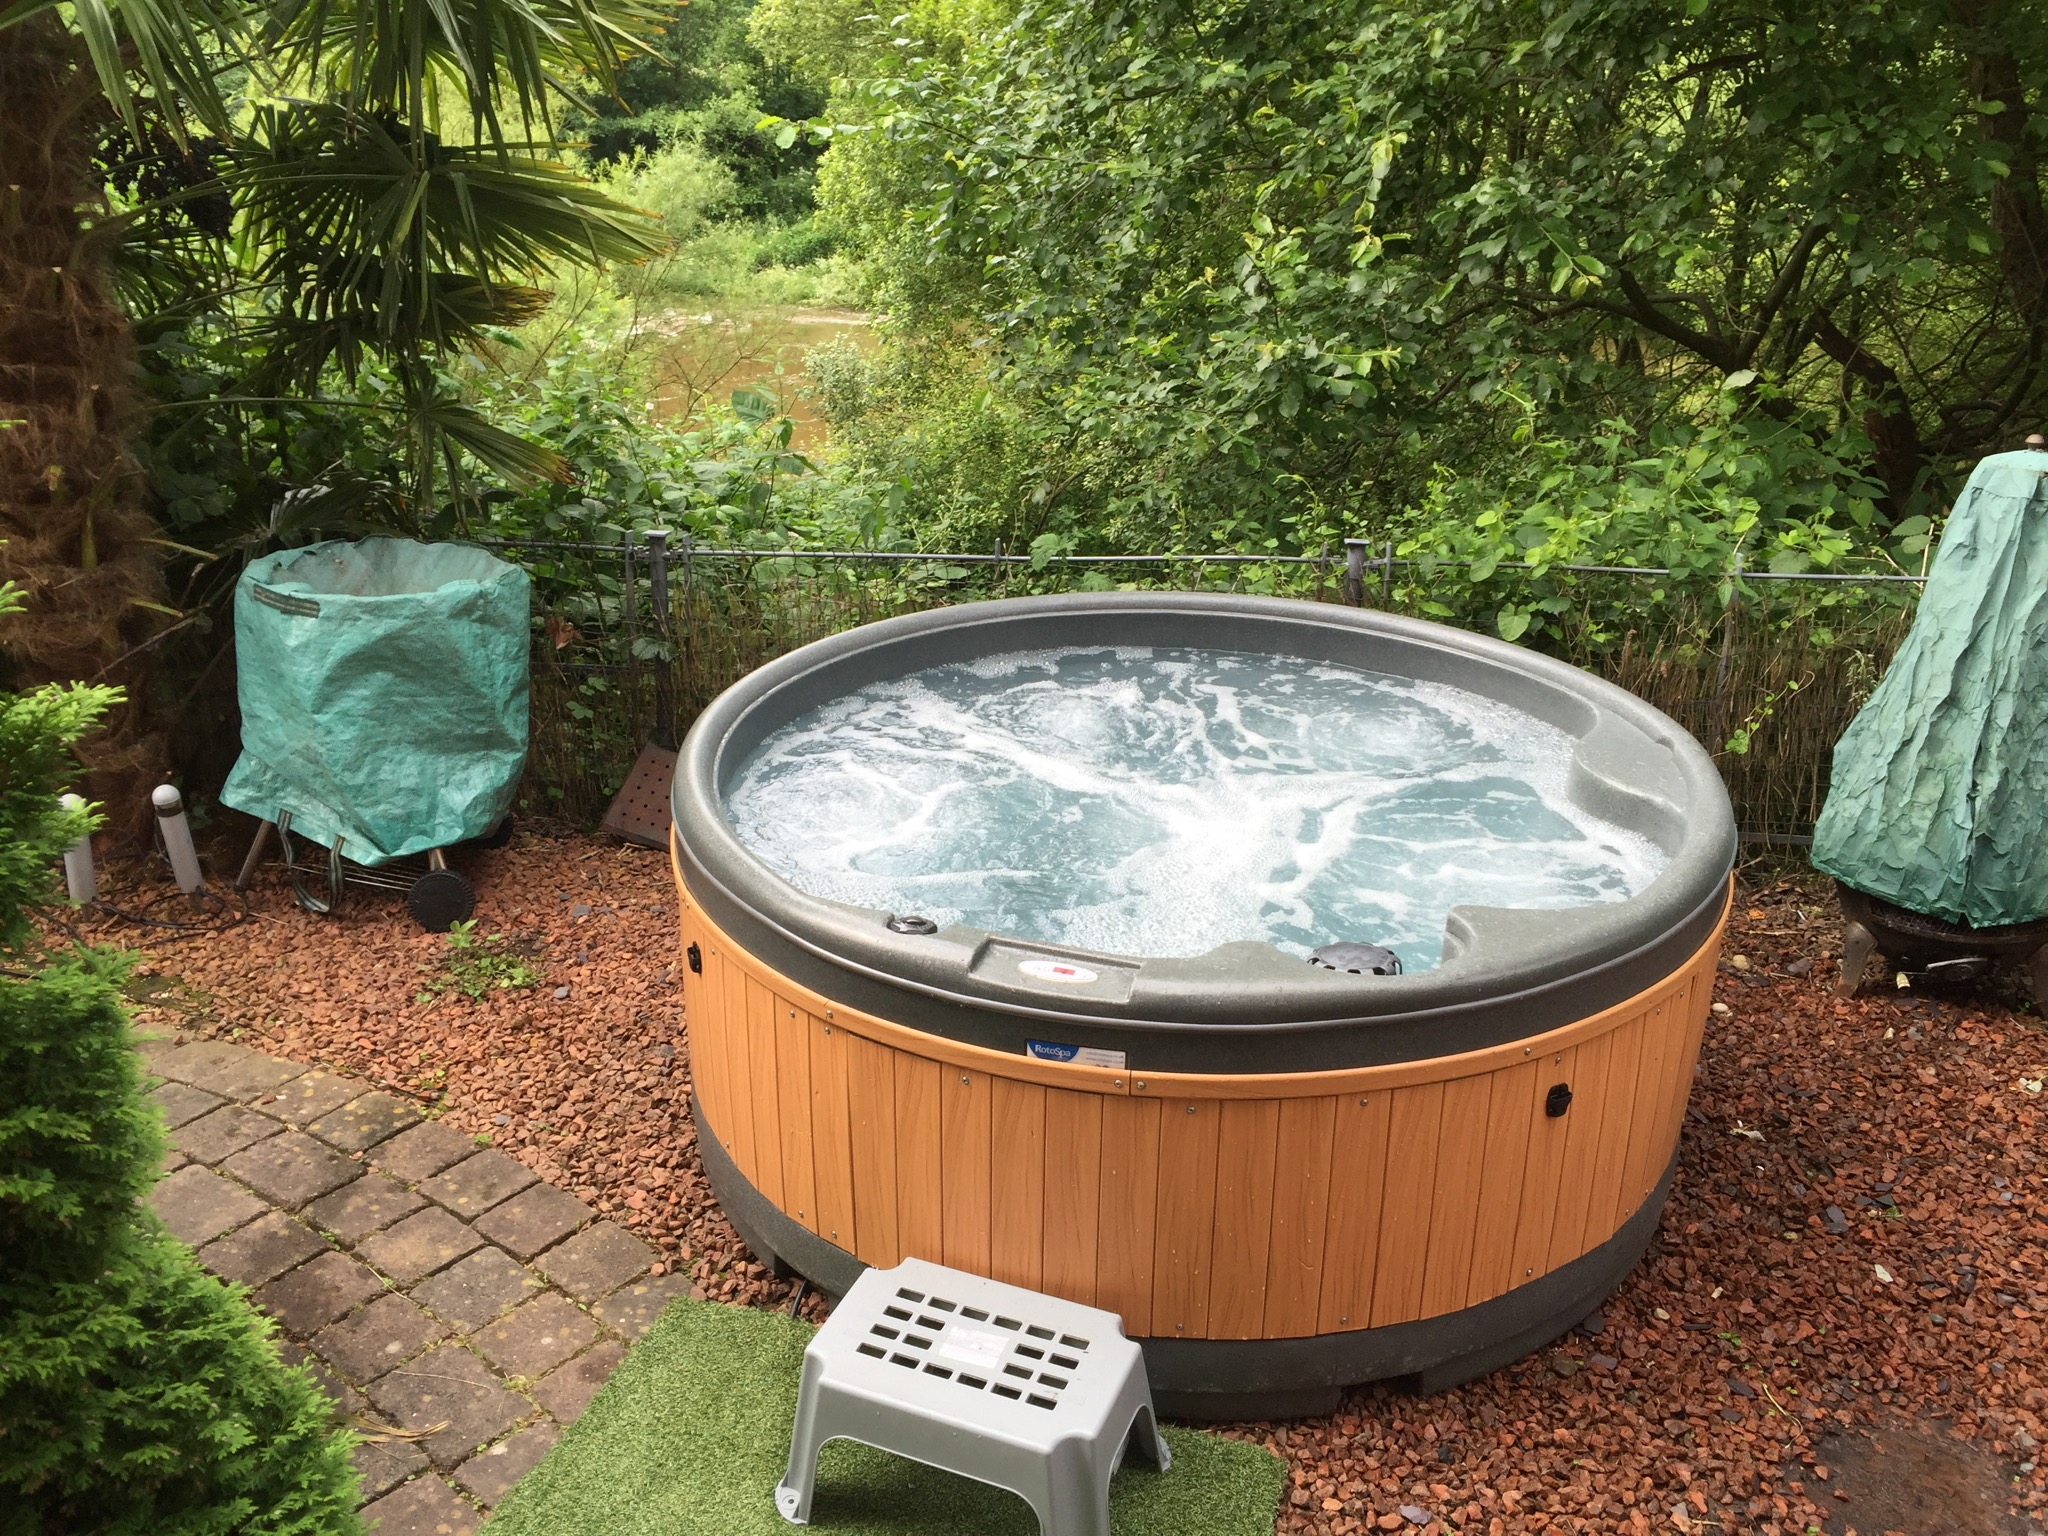 Loughborough Hot Tub Hire Local Hot Tub Rental Loughborough Leicester